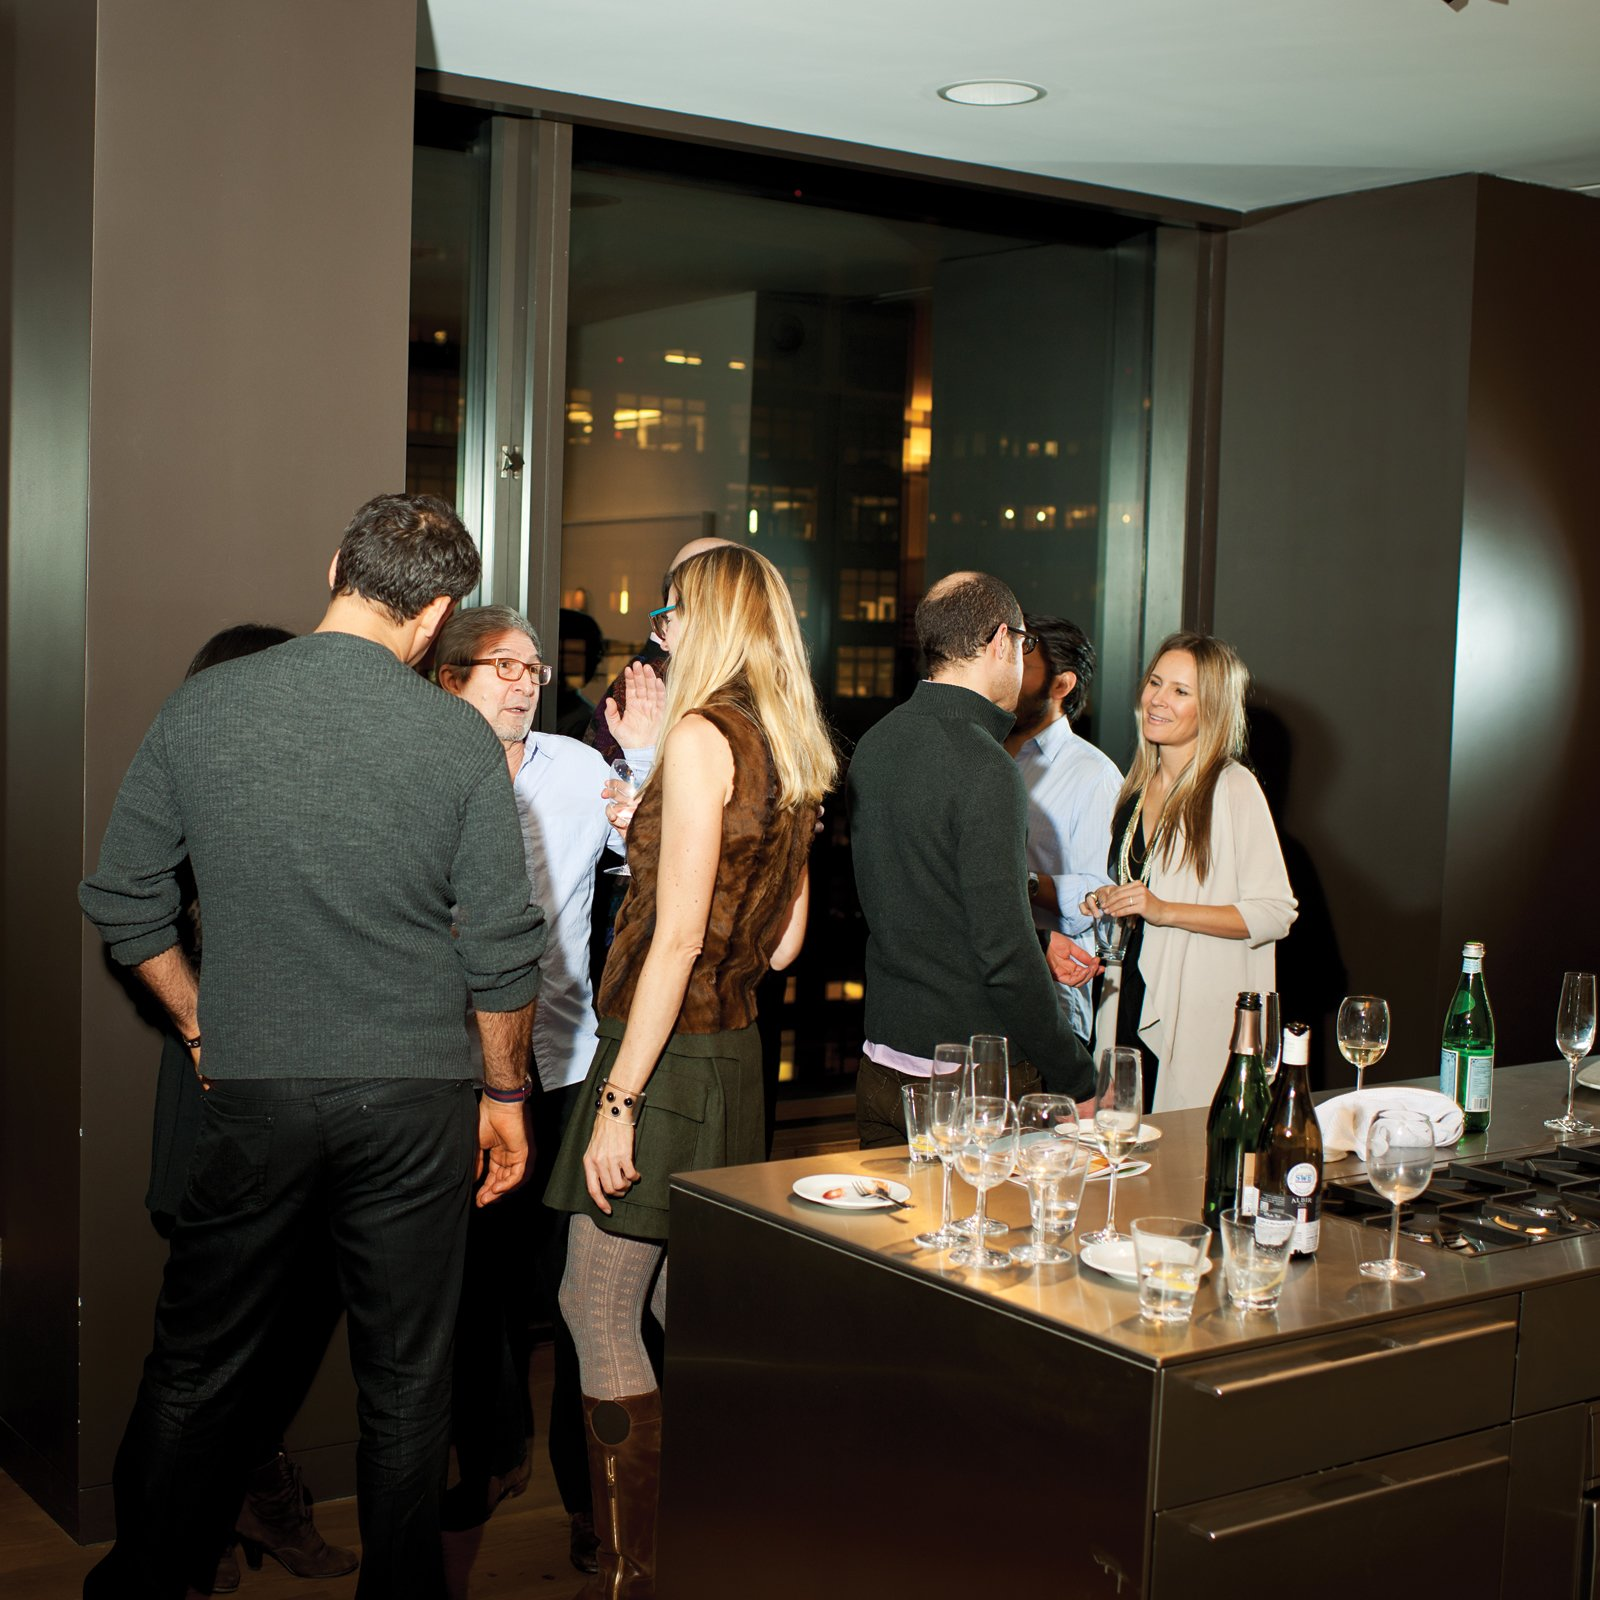 For a recent cocktail party, Calder Smith served white and red wine in Alessi glassware. Thad Vogler, of Bar Agricole in San Francisco, devised a custom cocktail served in tumblers from Spieglau.  Photo 9 of 14 in High-Rise Living in Manhattan